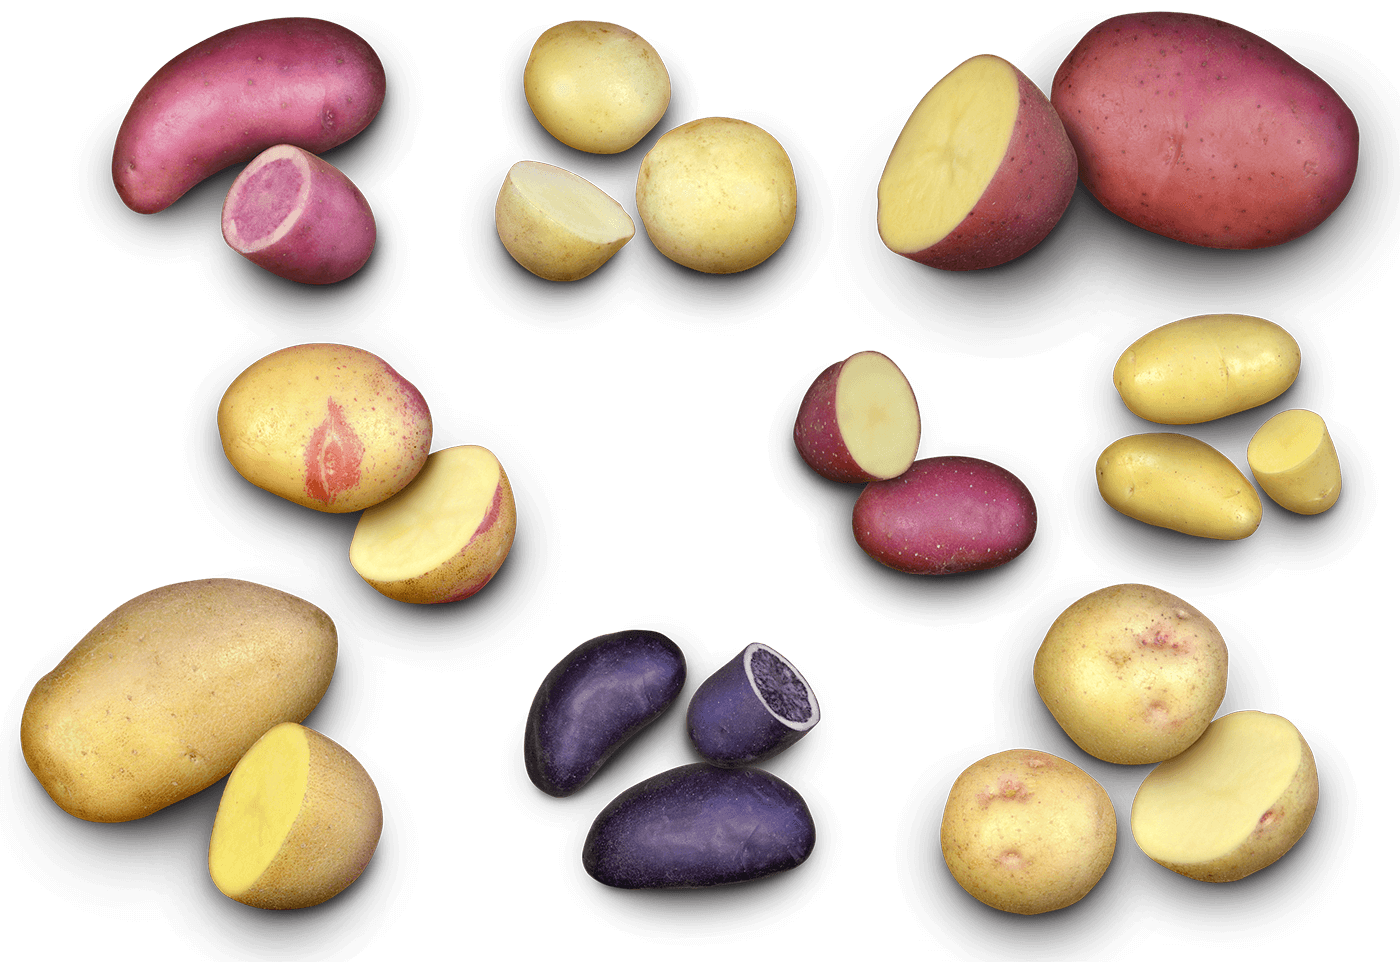 Potato collage